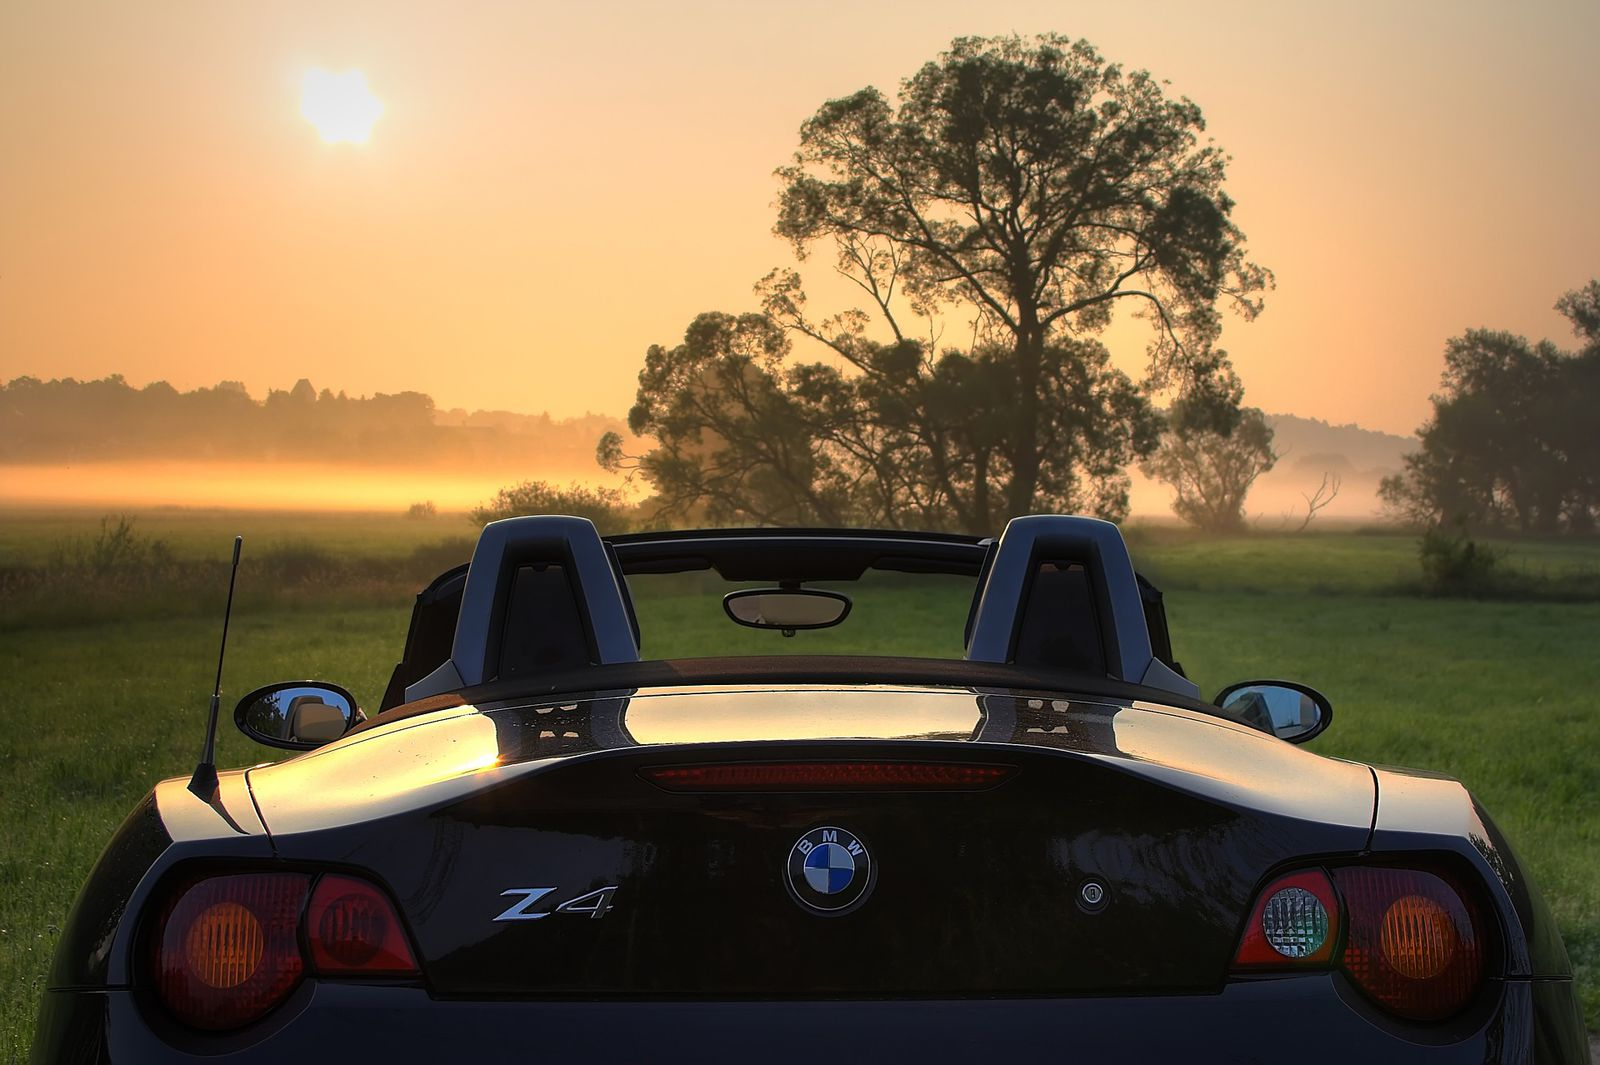 How much is car insurance on a BMW?